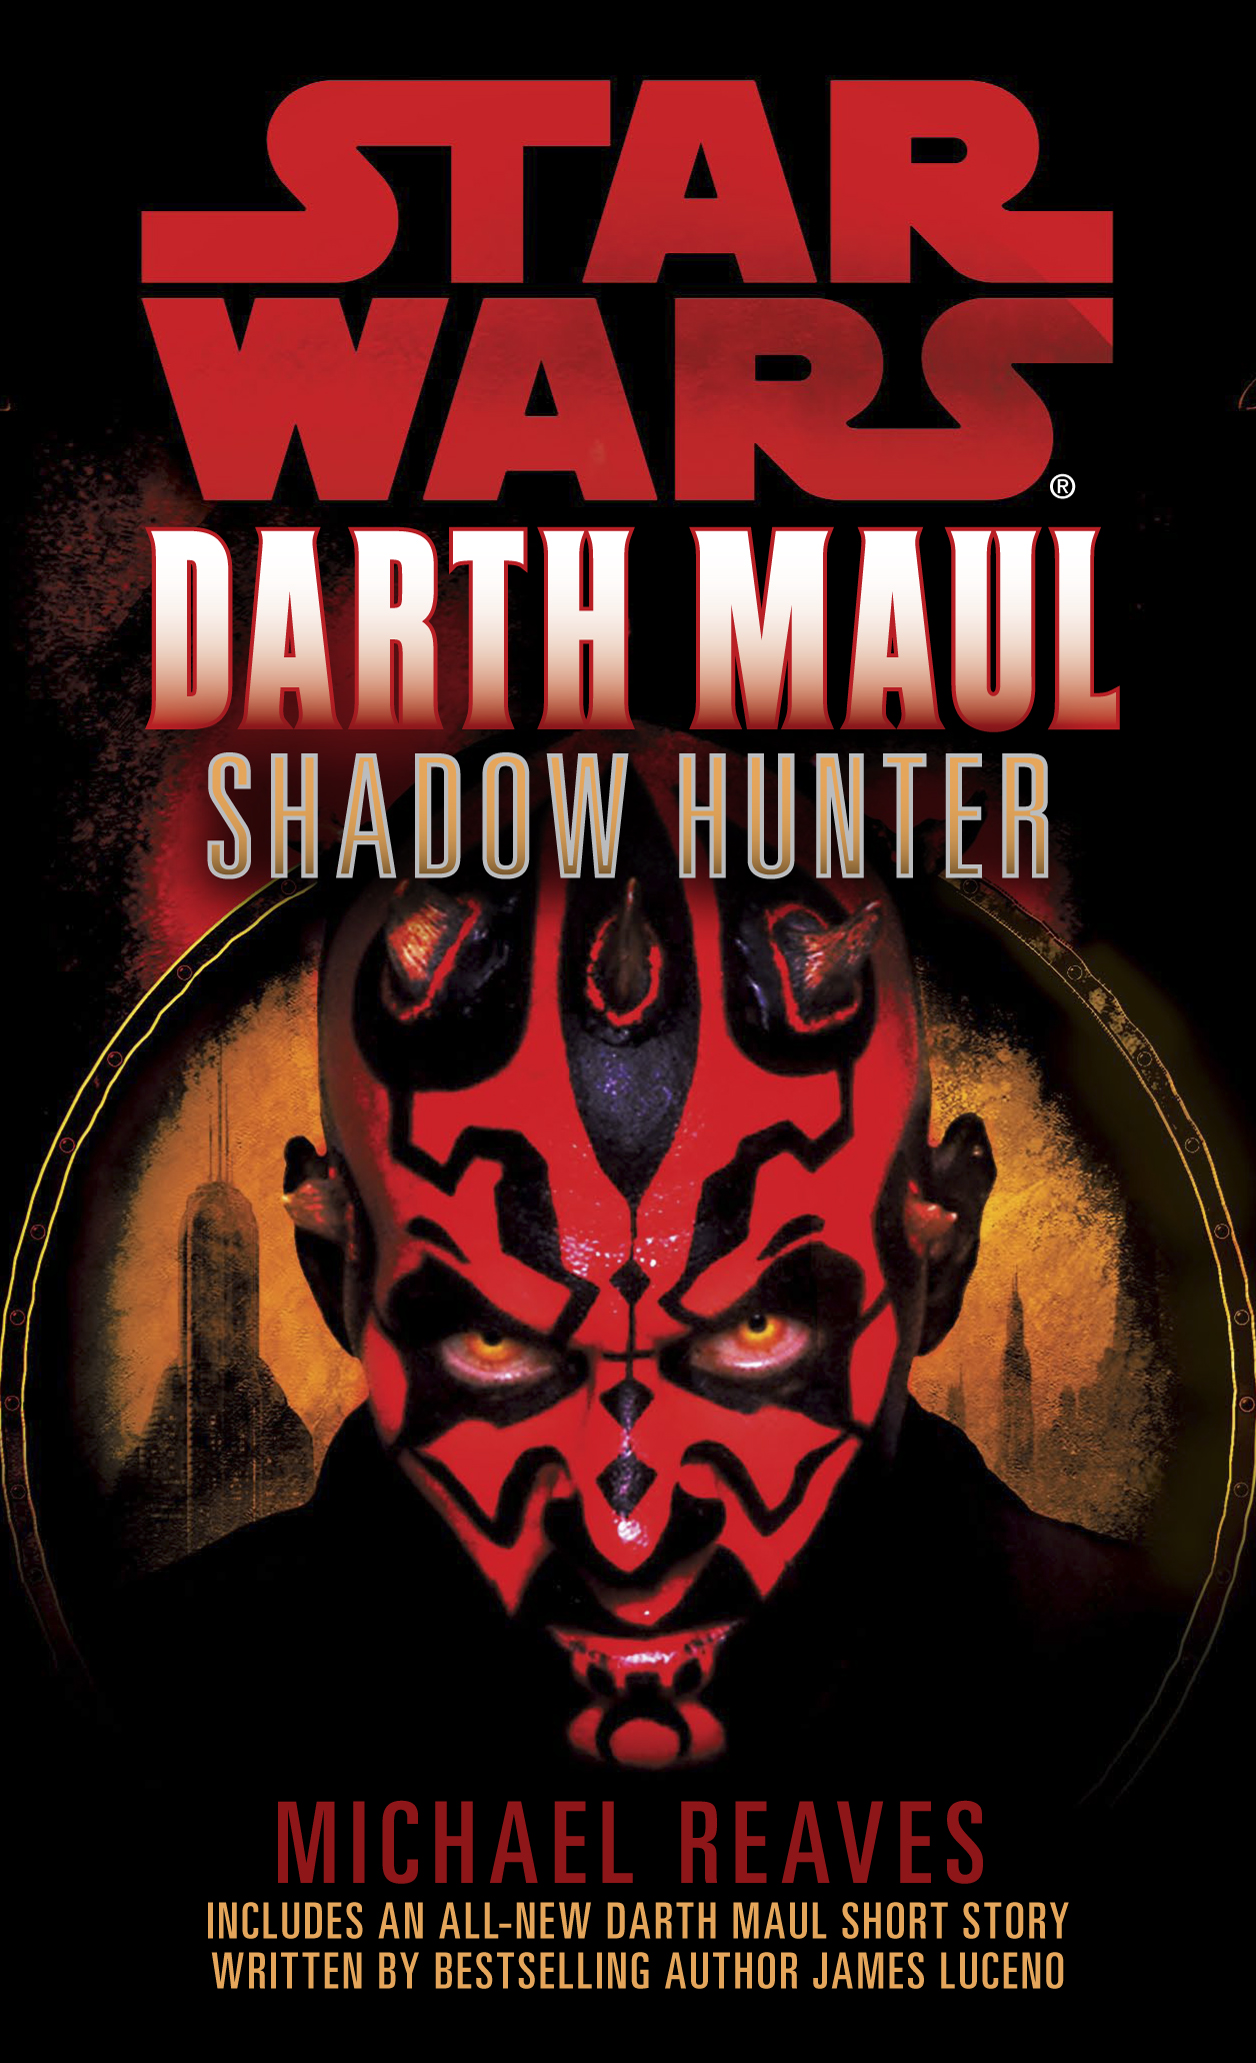 Star Wars Darth Maul: Restraint